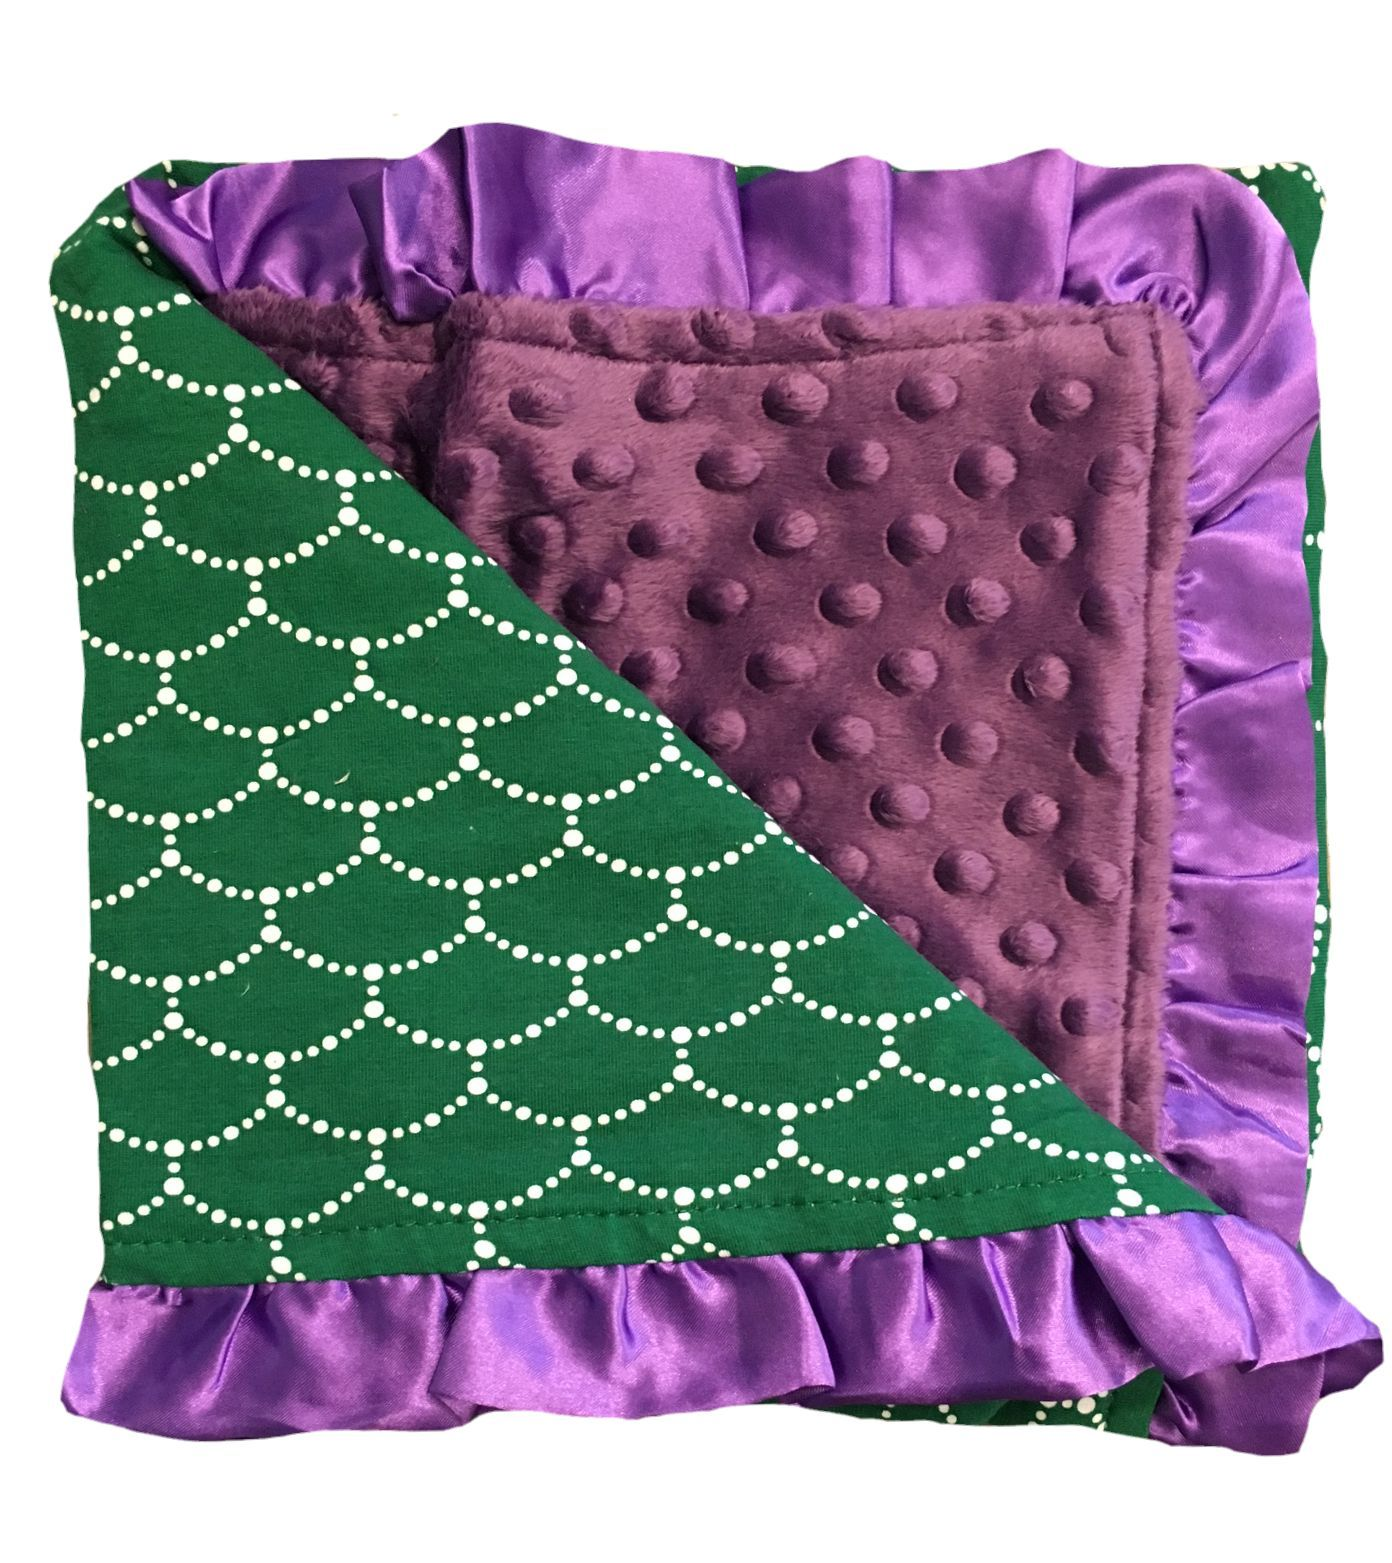 Minky blanket with mermaid design products pinterest blanket